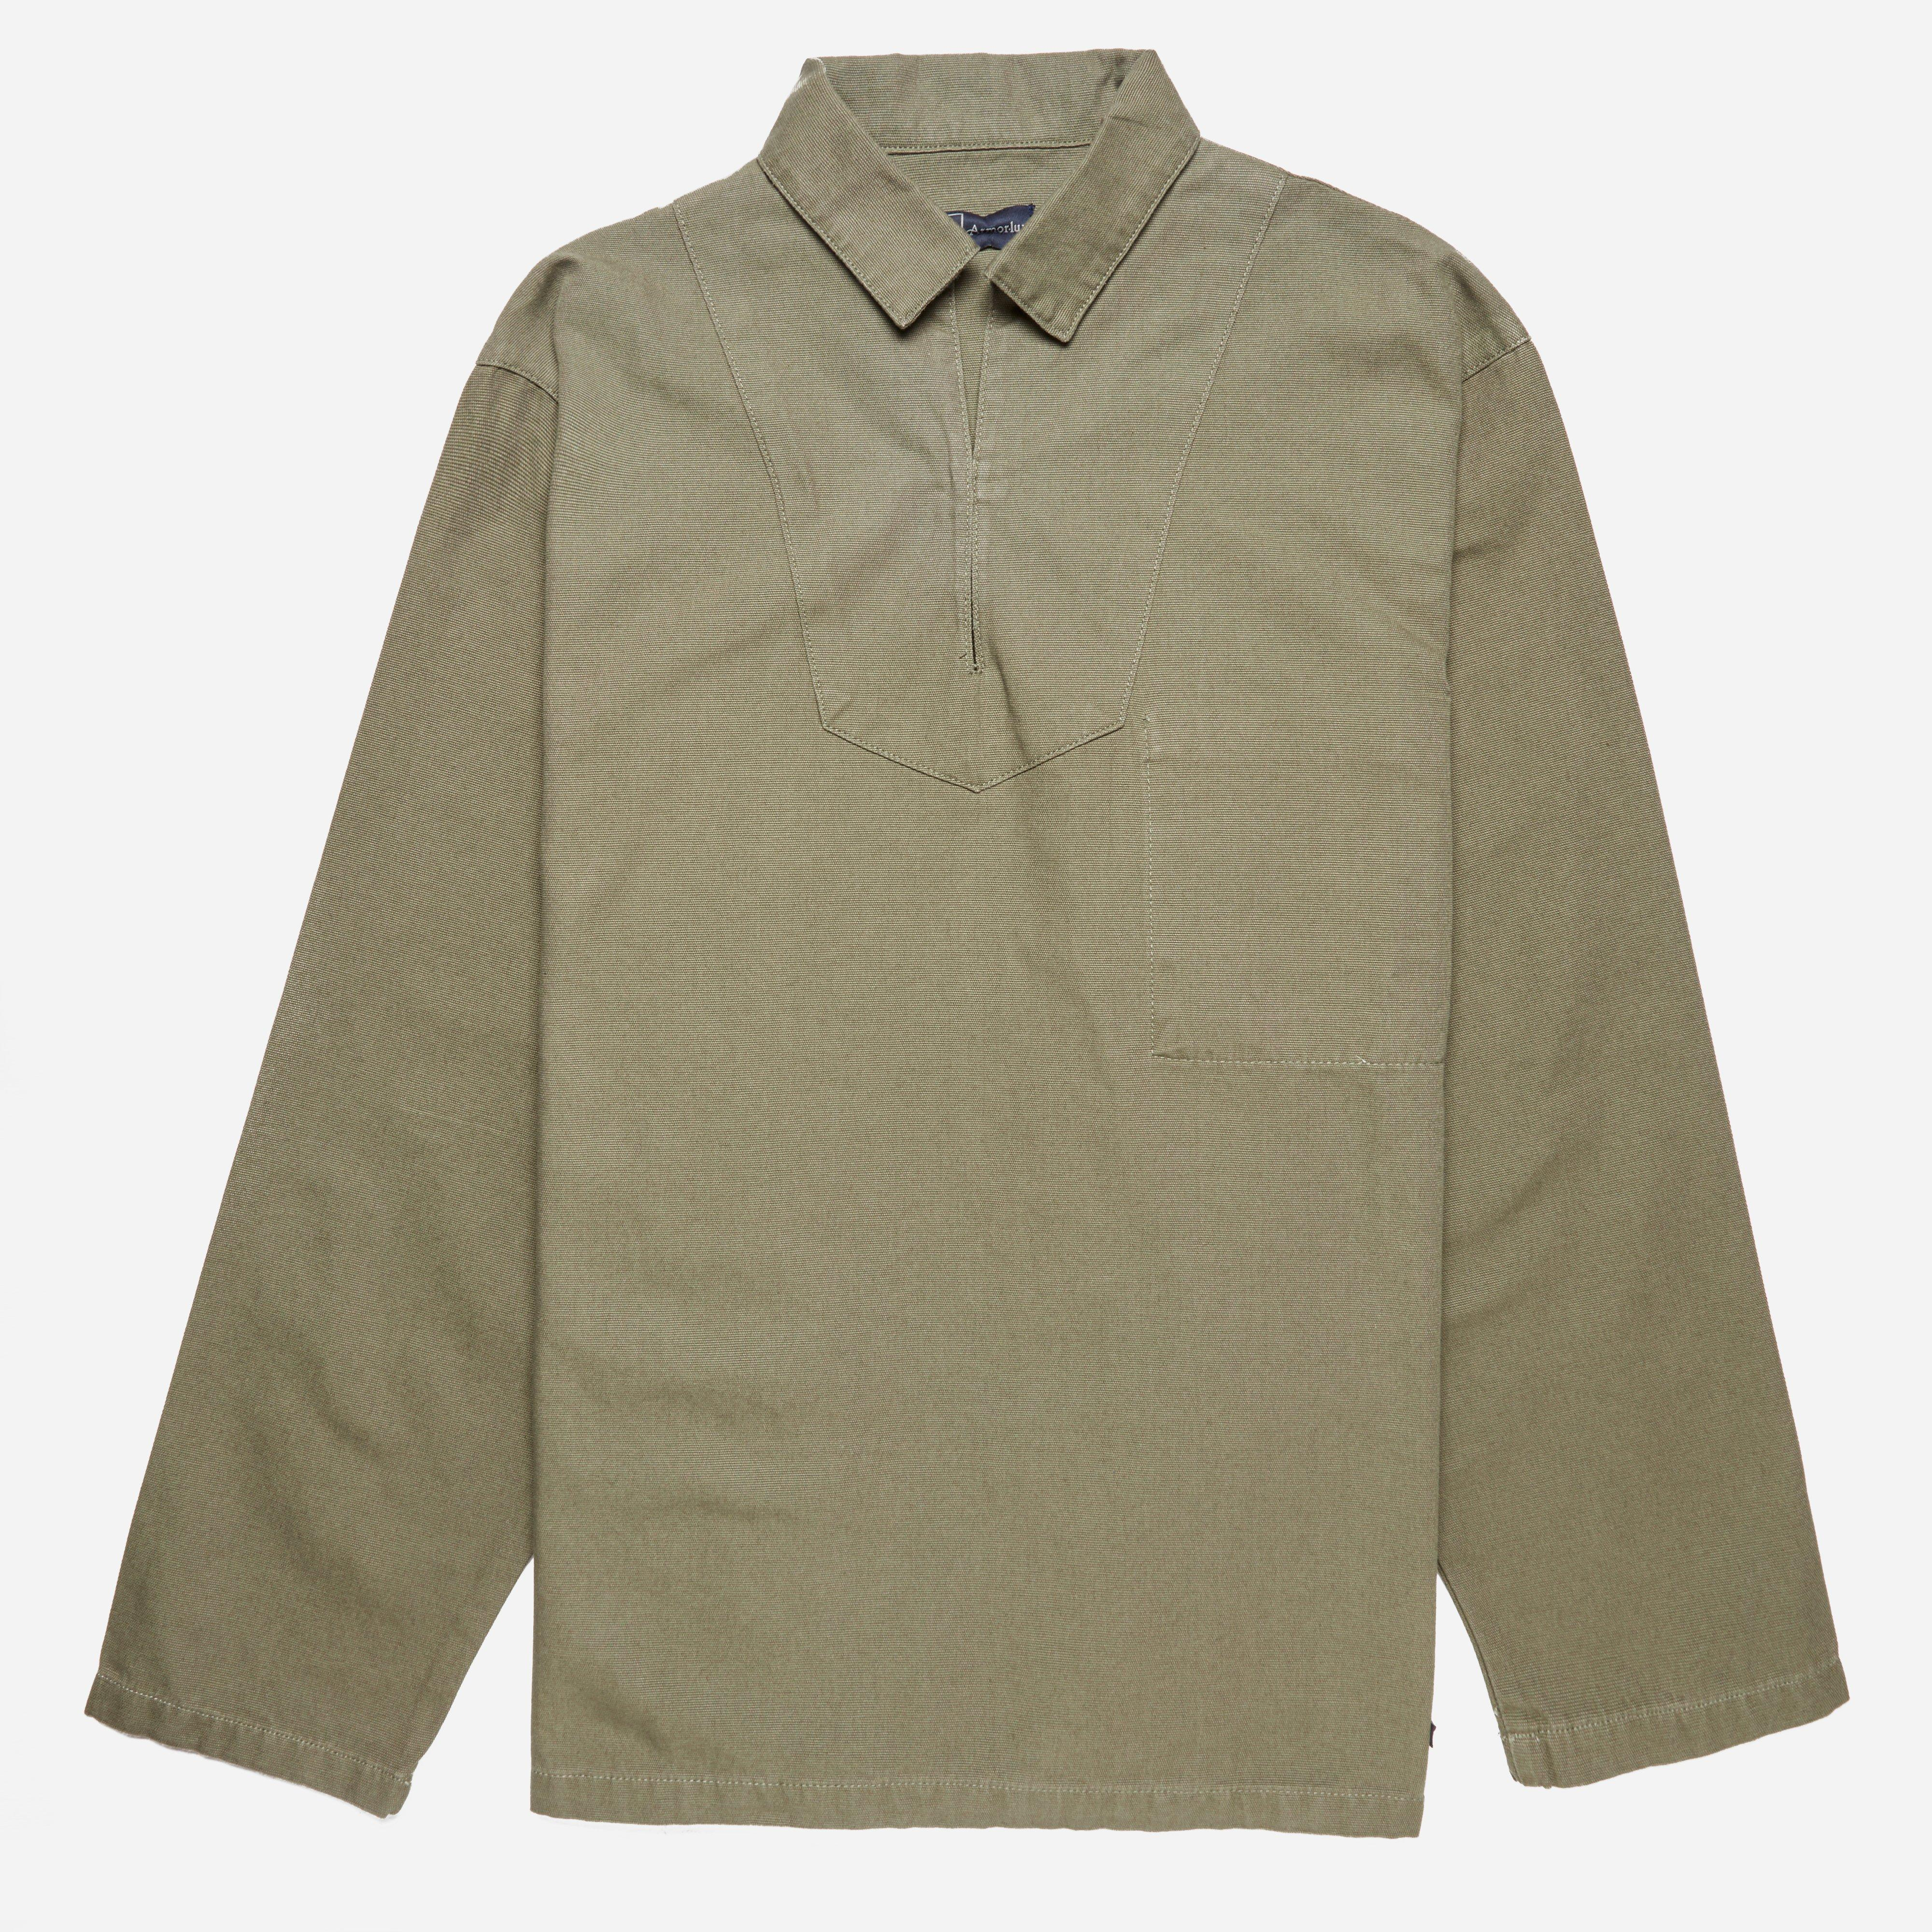 Armor Lux 7531 Smock